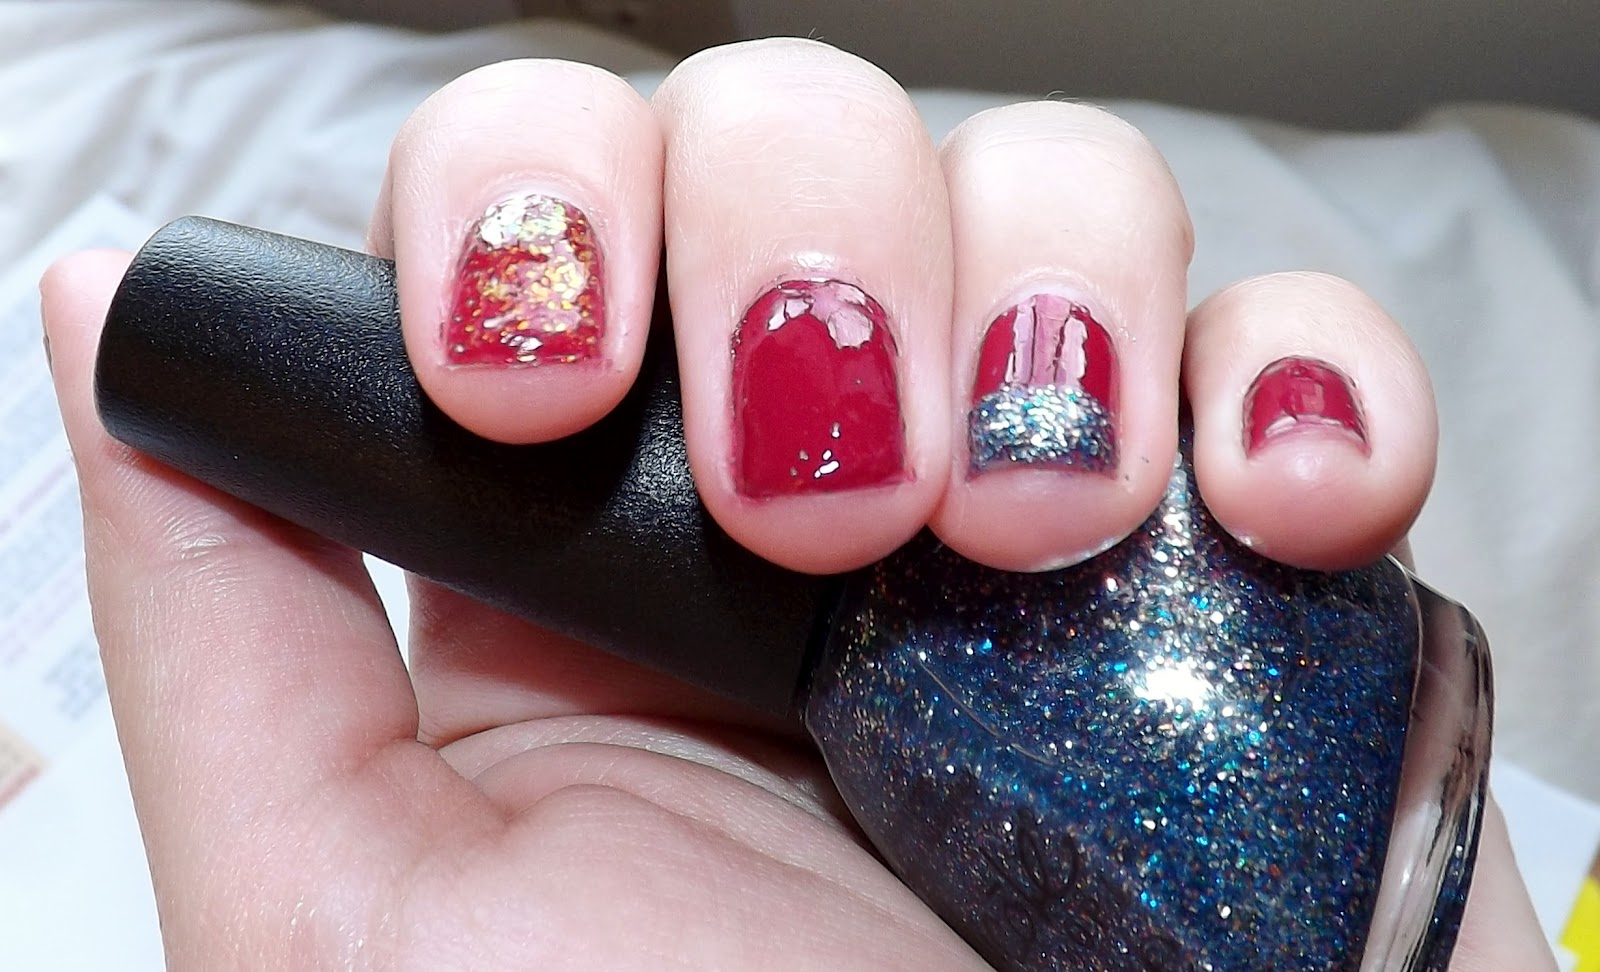 how to fix chipped nail polish